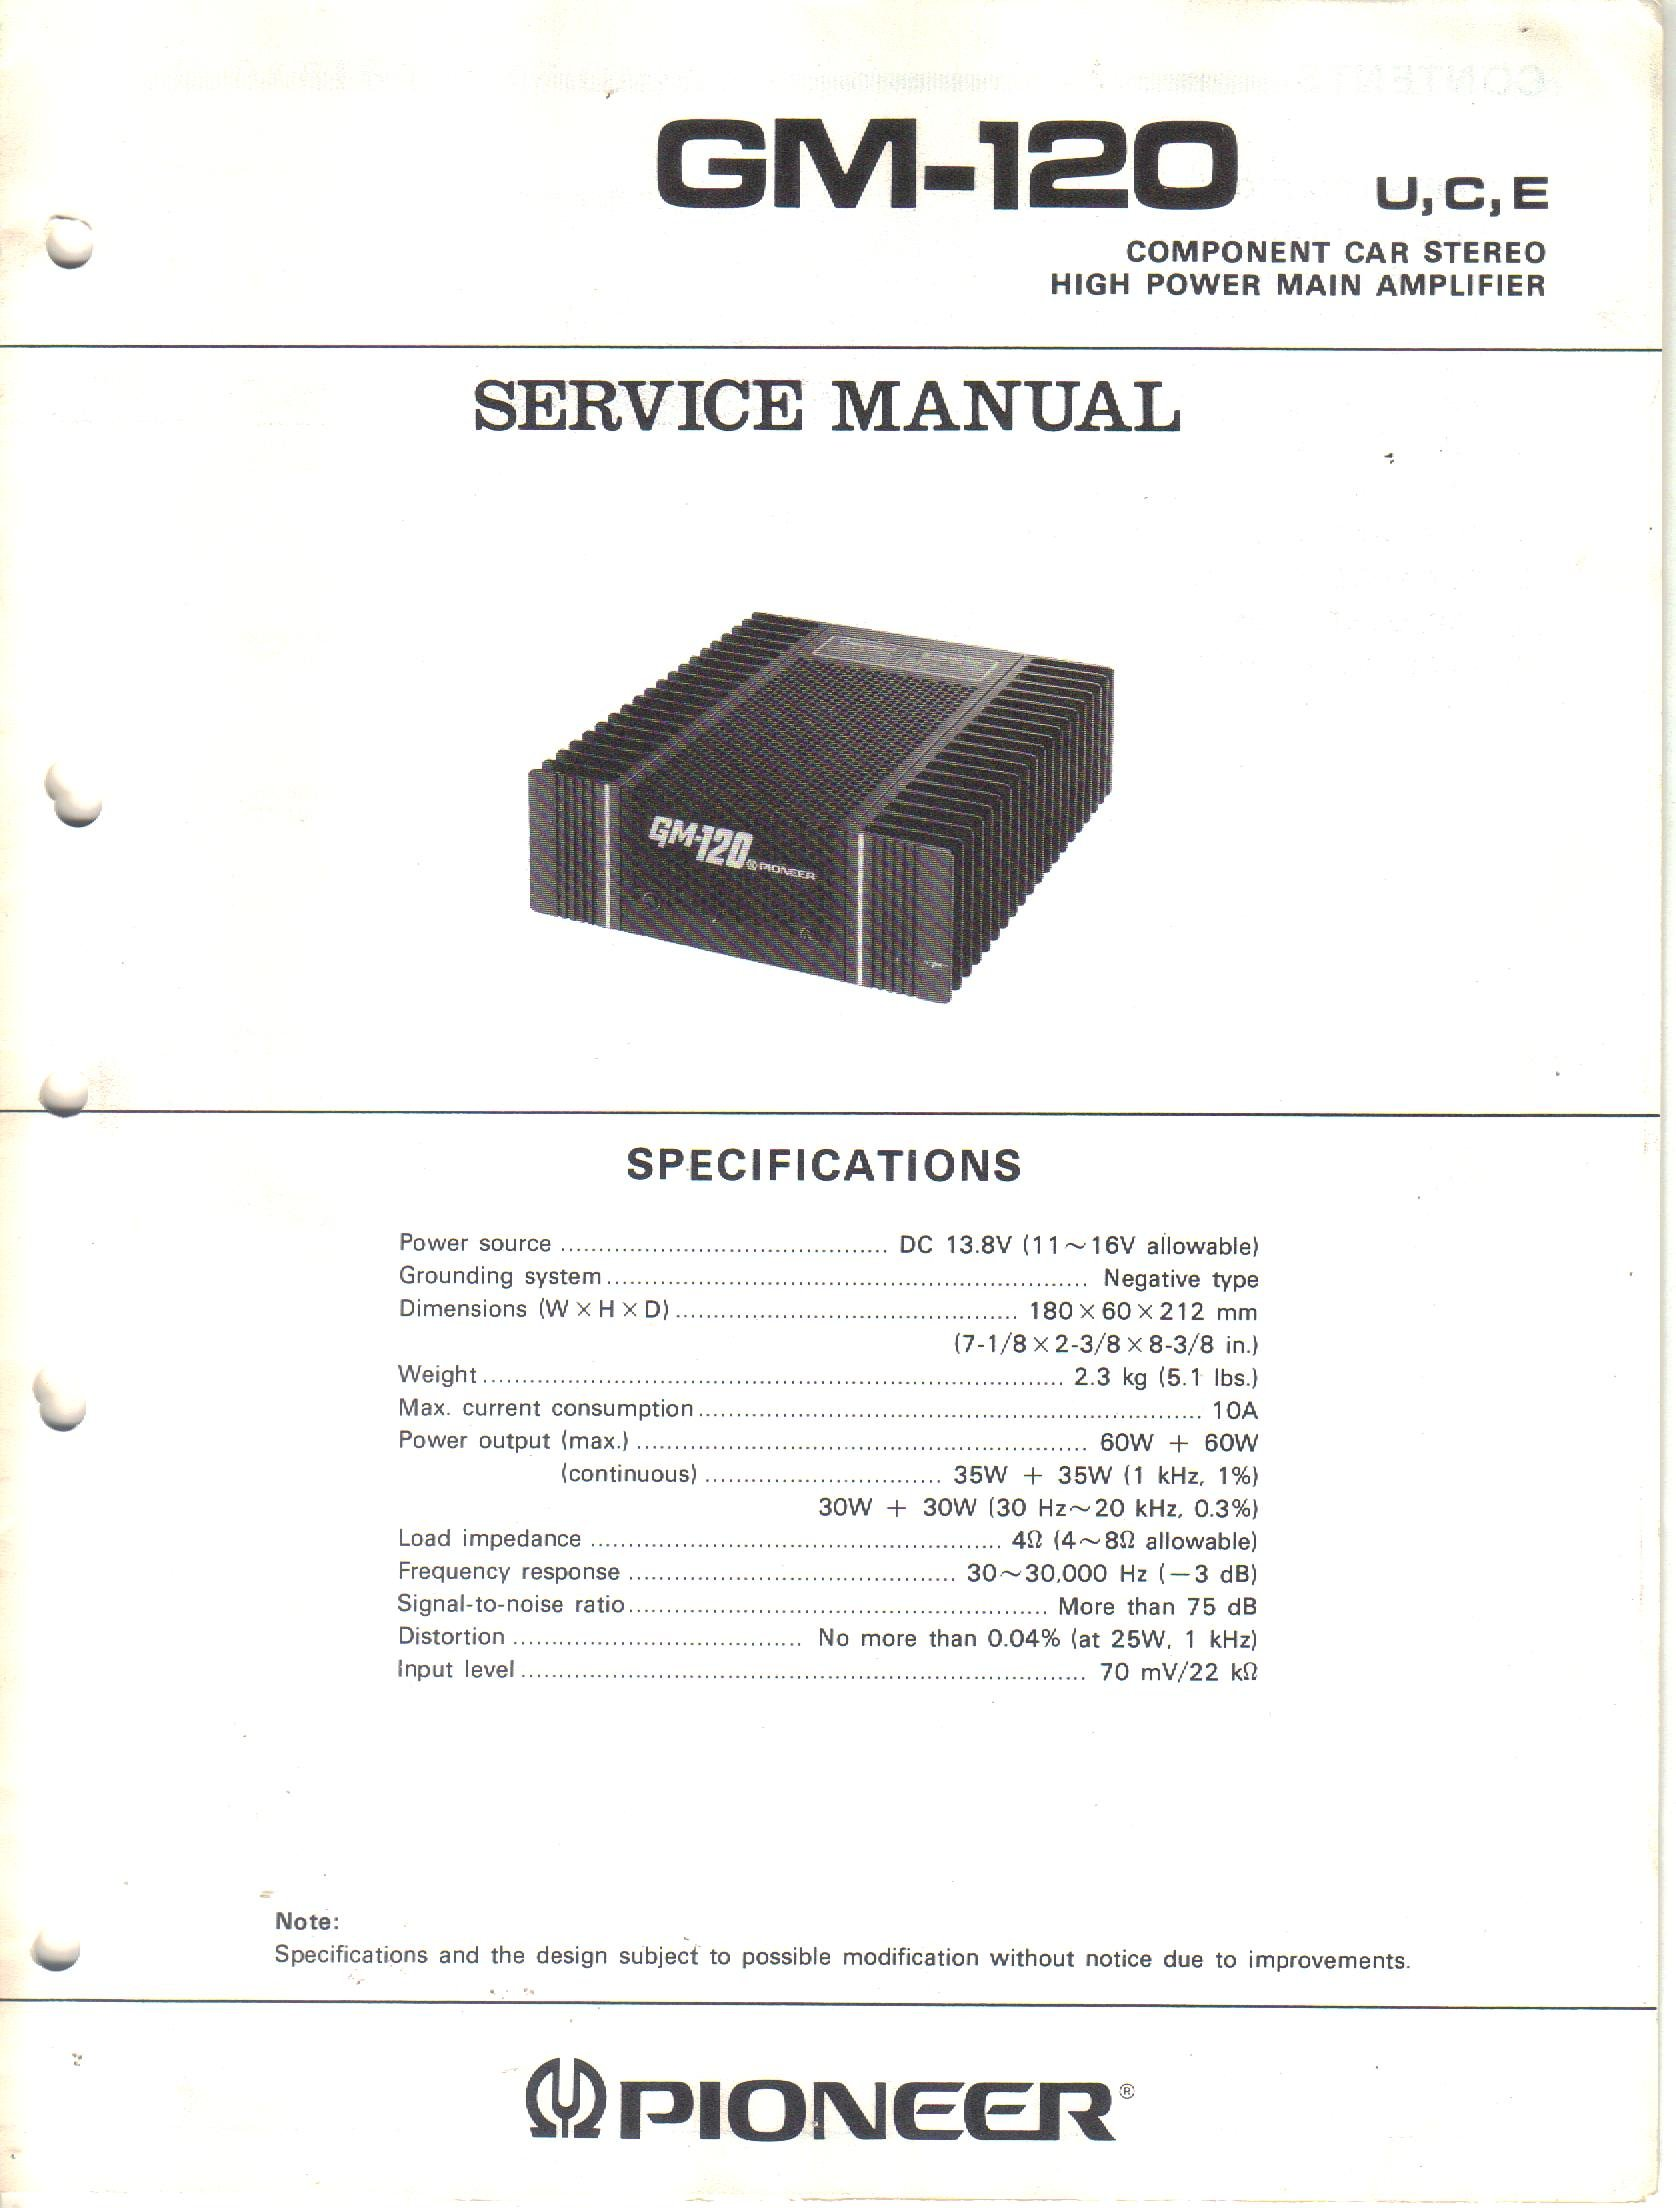 Service Manual Parts List Schematic Wiring Diagram For Pioneer Gm 120 High Power Main Amplifier Component Car Stereo Pioneer Electronic Corp Not Stated Amazon Com Books